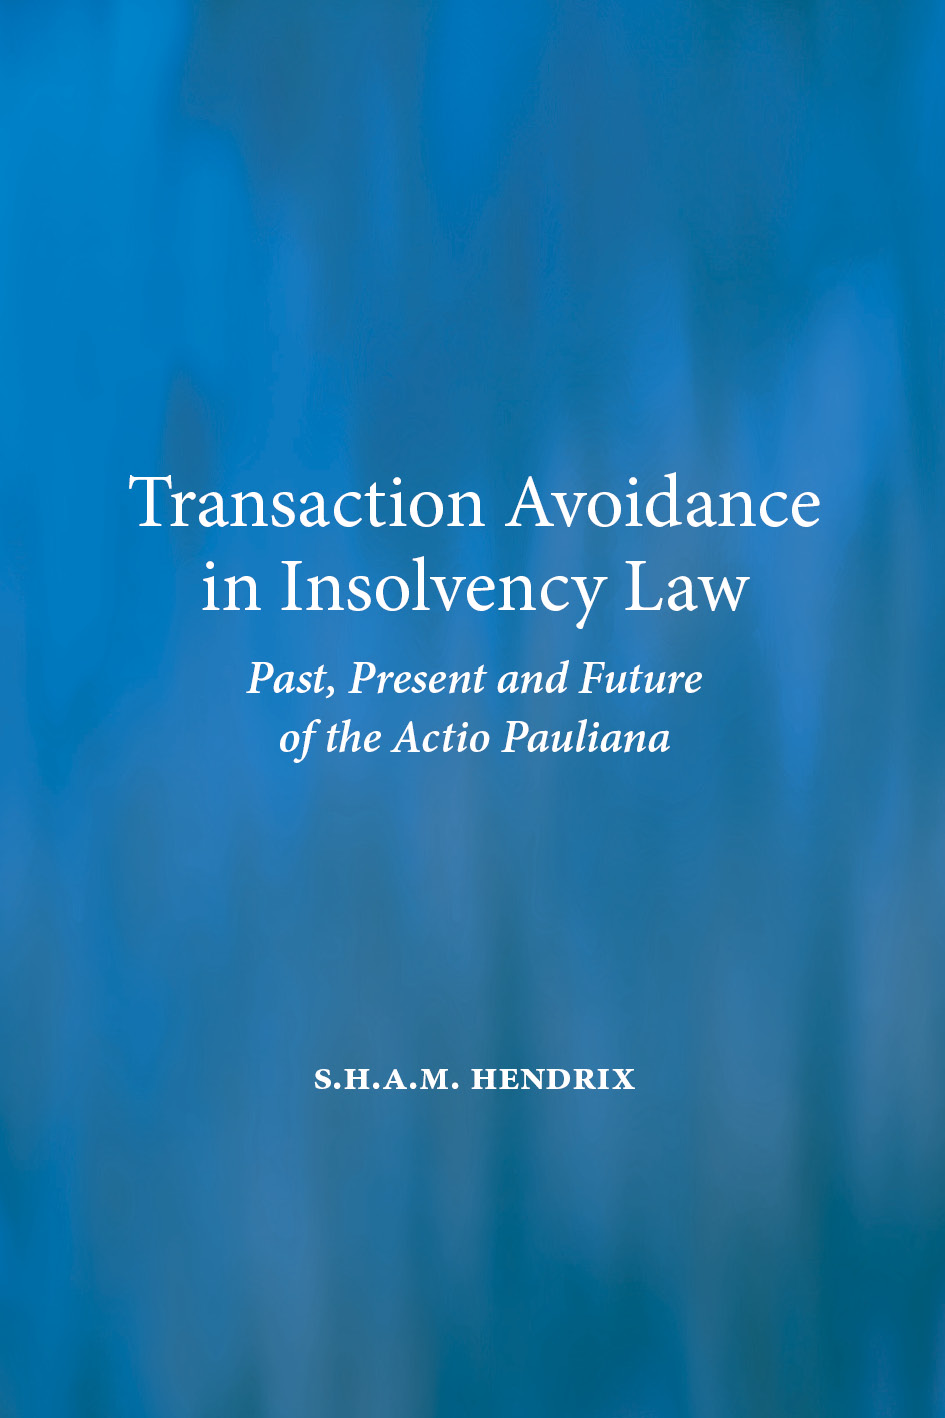 Transaction Avoidance in Insolvency Law